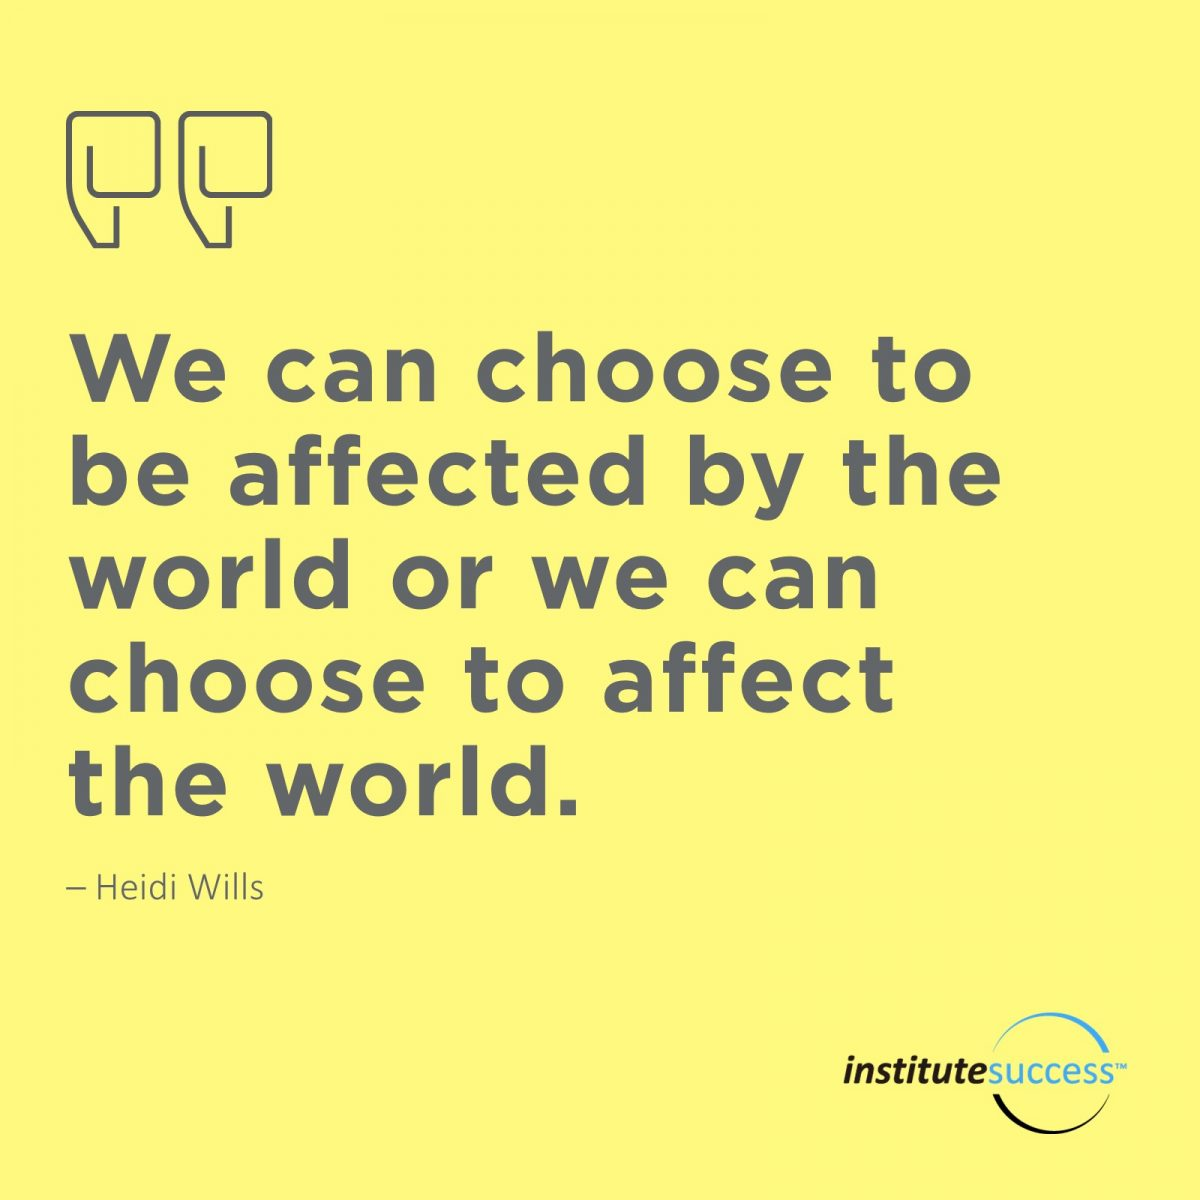 We can choose to be affected by the world or we can choose to effect the world. –  Heidi Wills